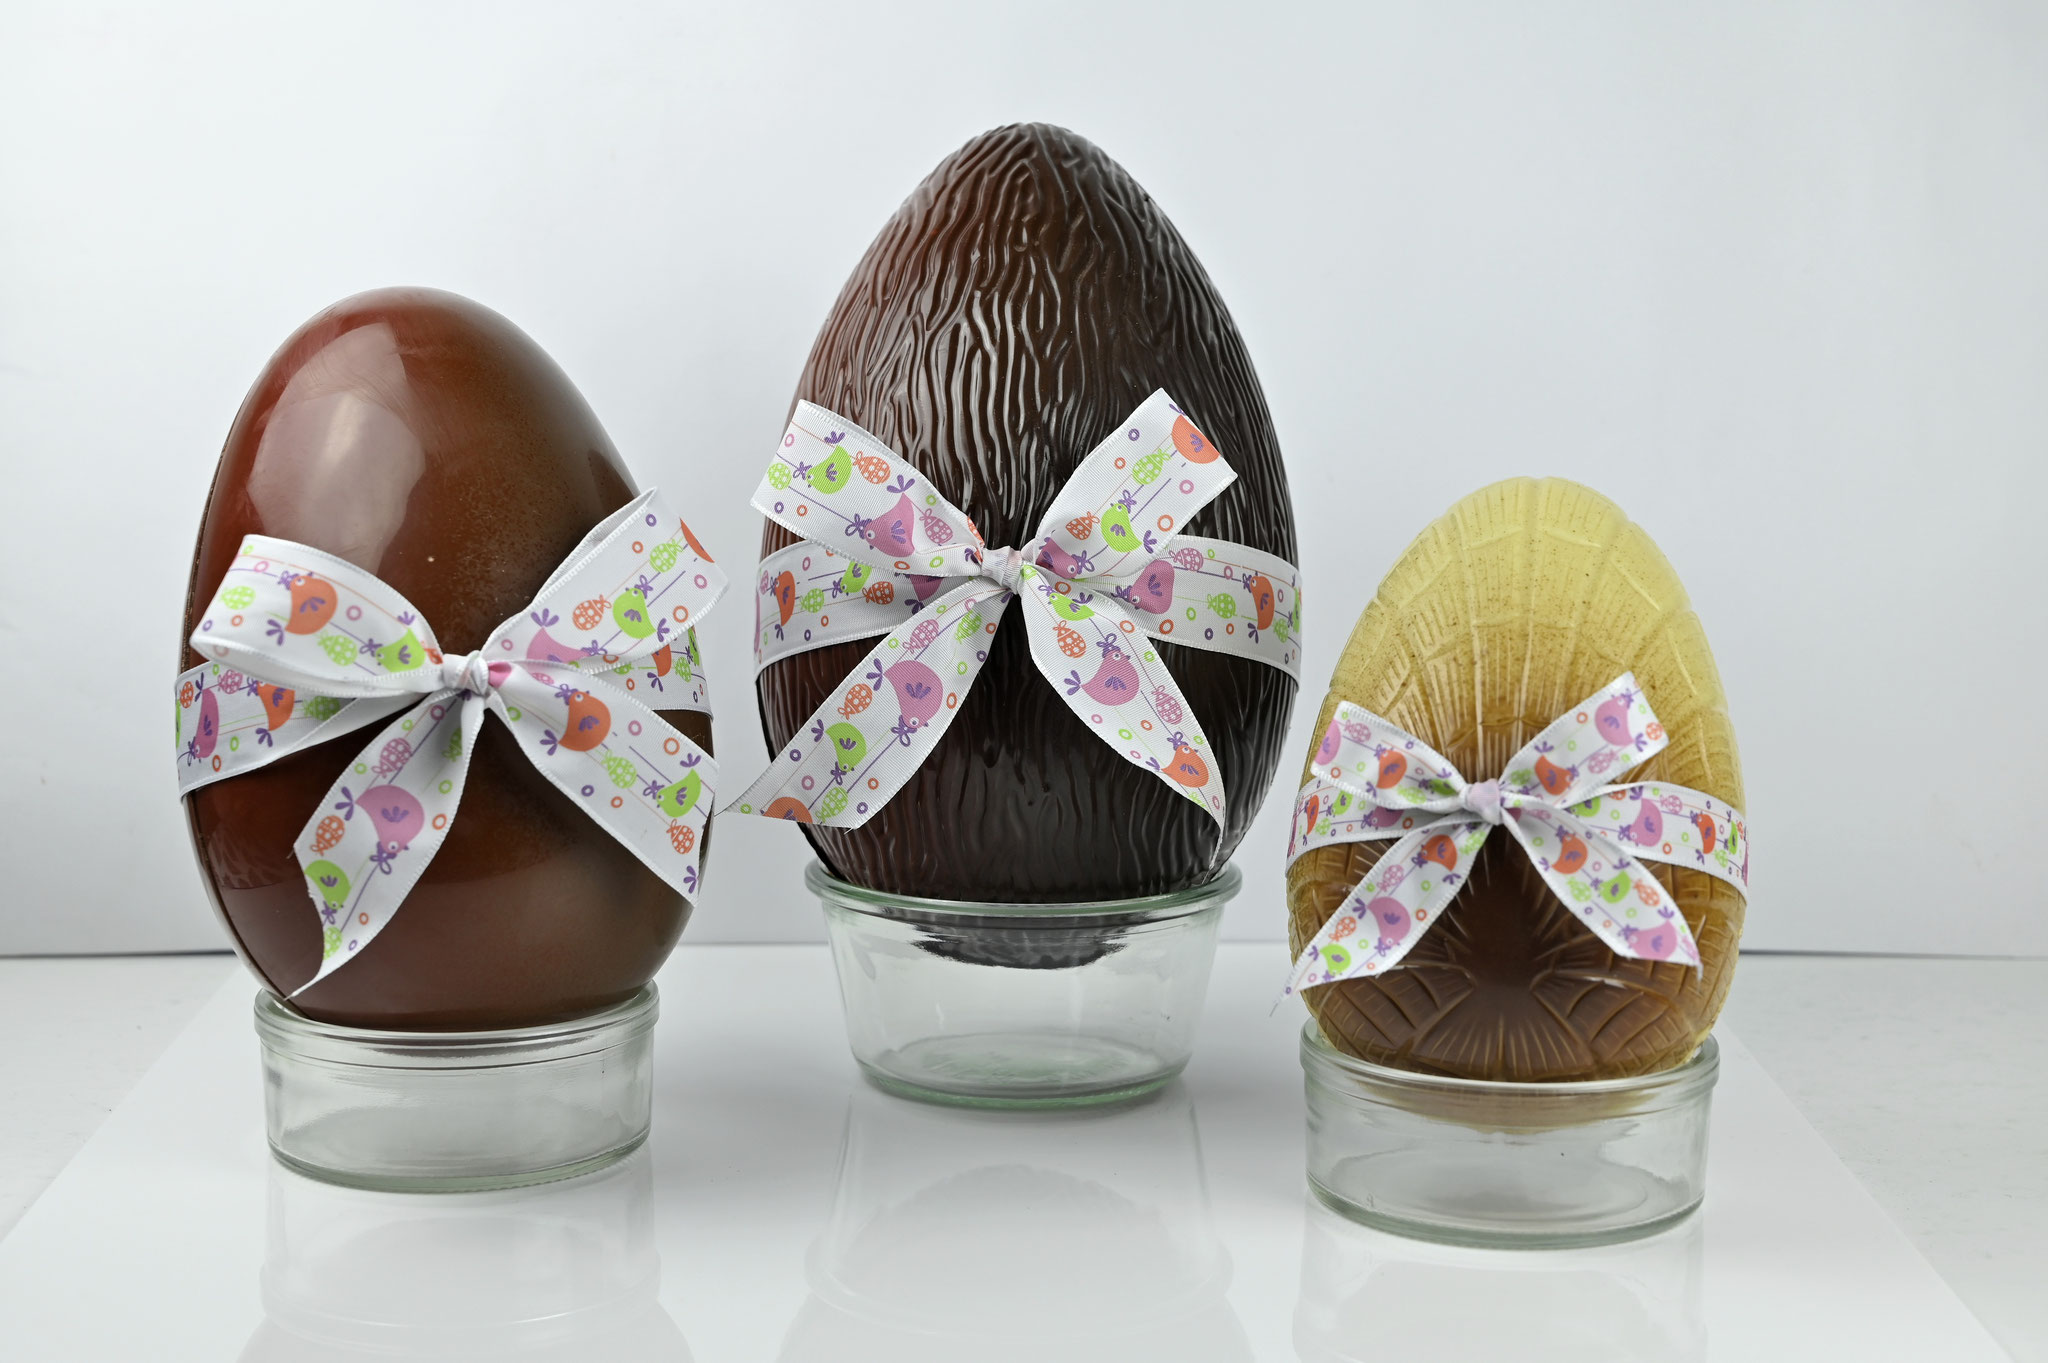 oeuf T5-615g-40.00€    T4-470g-29.60€    T3-350g-22.00€